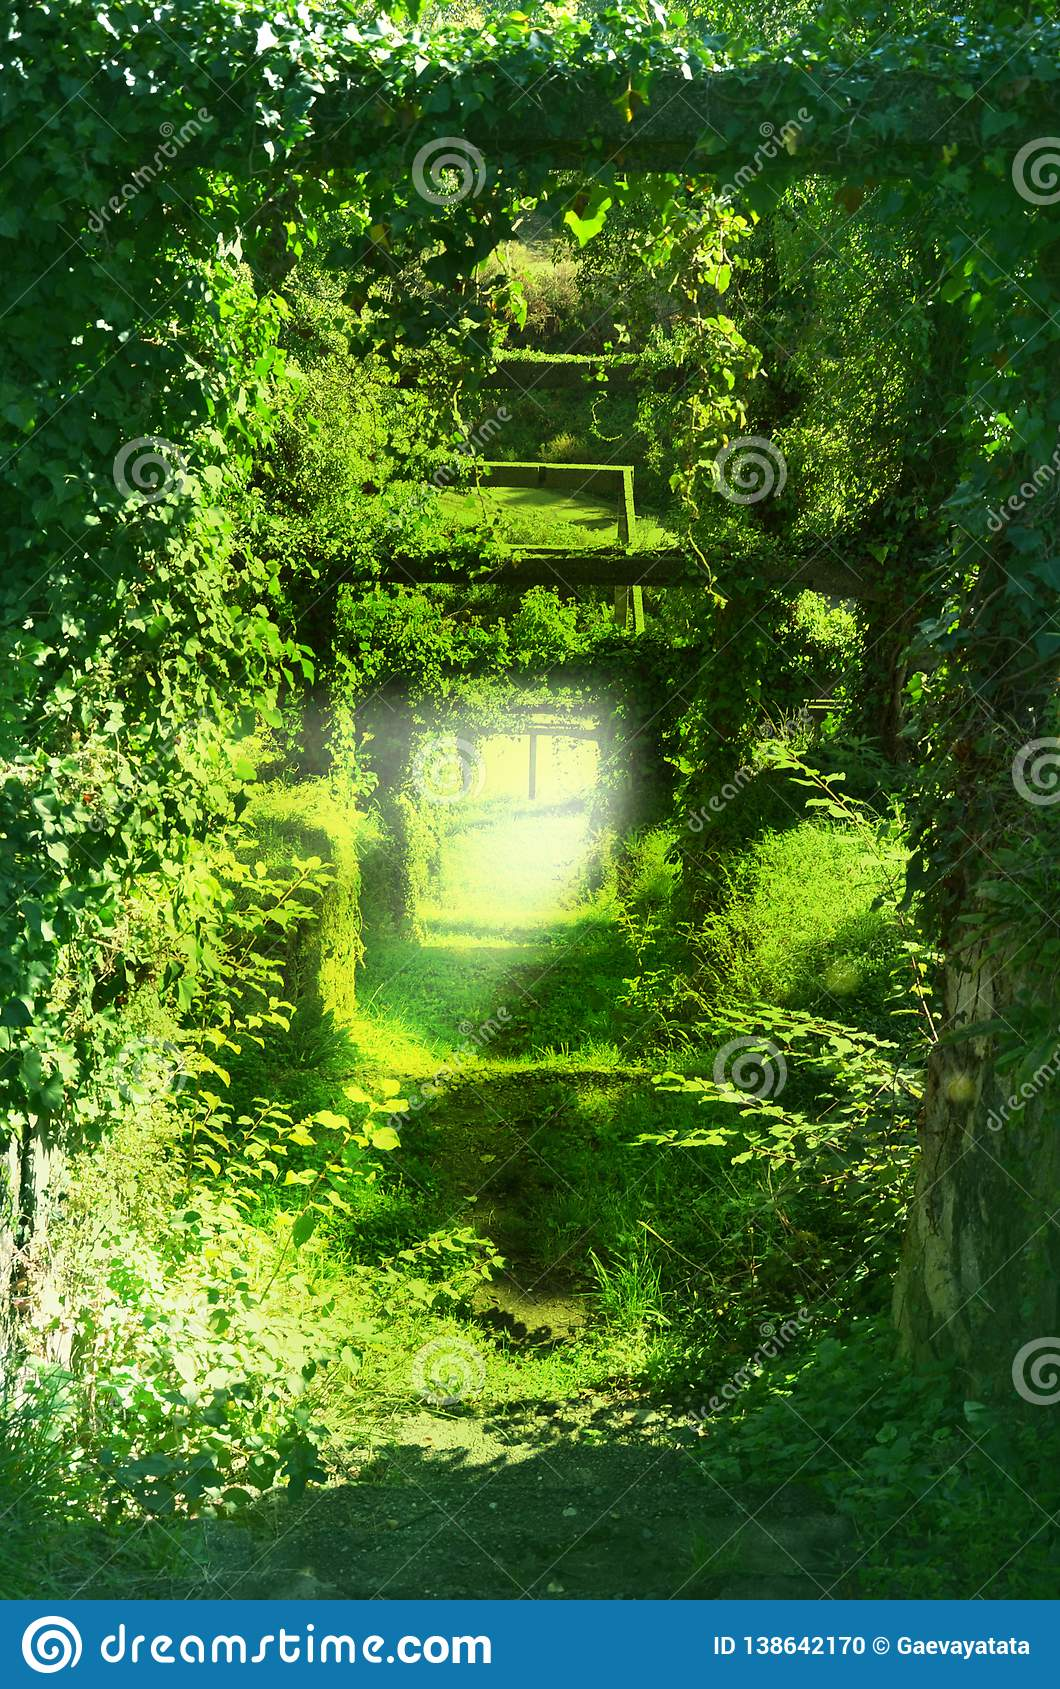 Trail in the green tunnels of the branches of trees, grass, climbing vines. Image